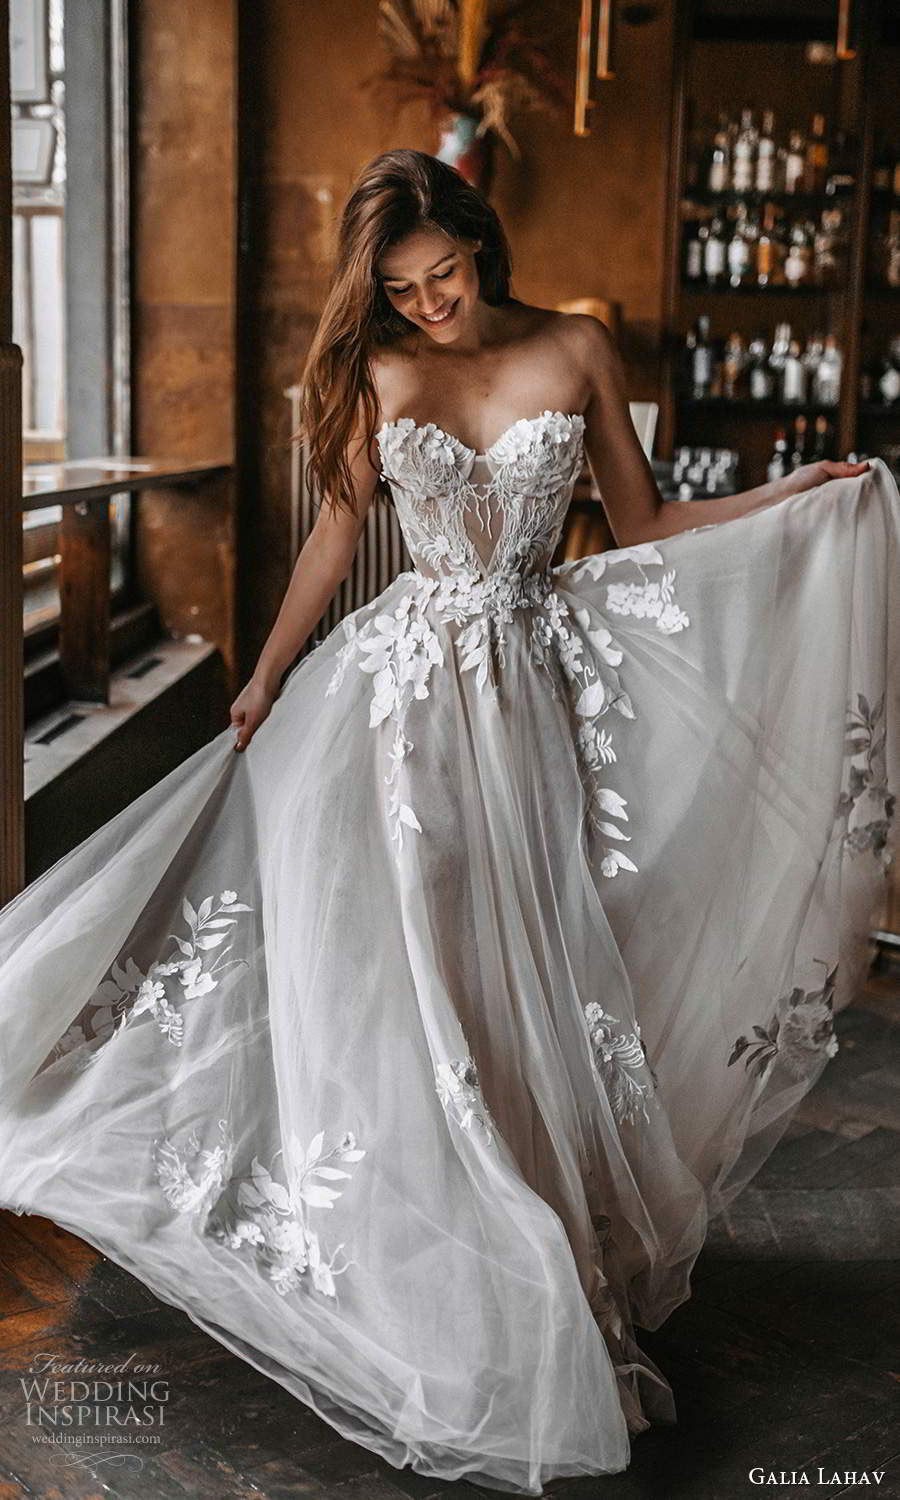 galia lahav spring 2022 gala bridal strapless sweetheart neckline embellished corset bodice a line ball gown wedding dress chapel train (4) mv